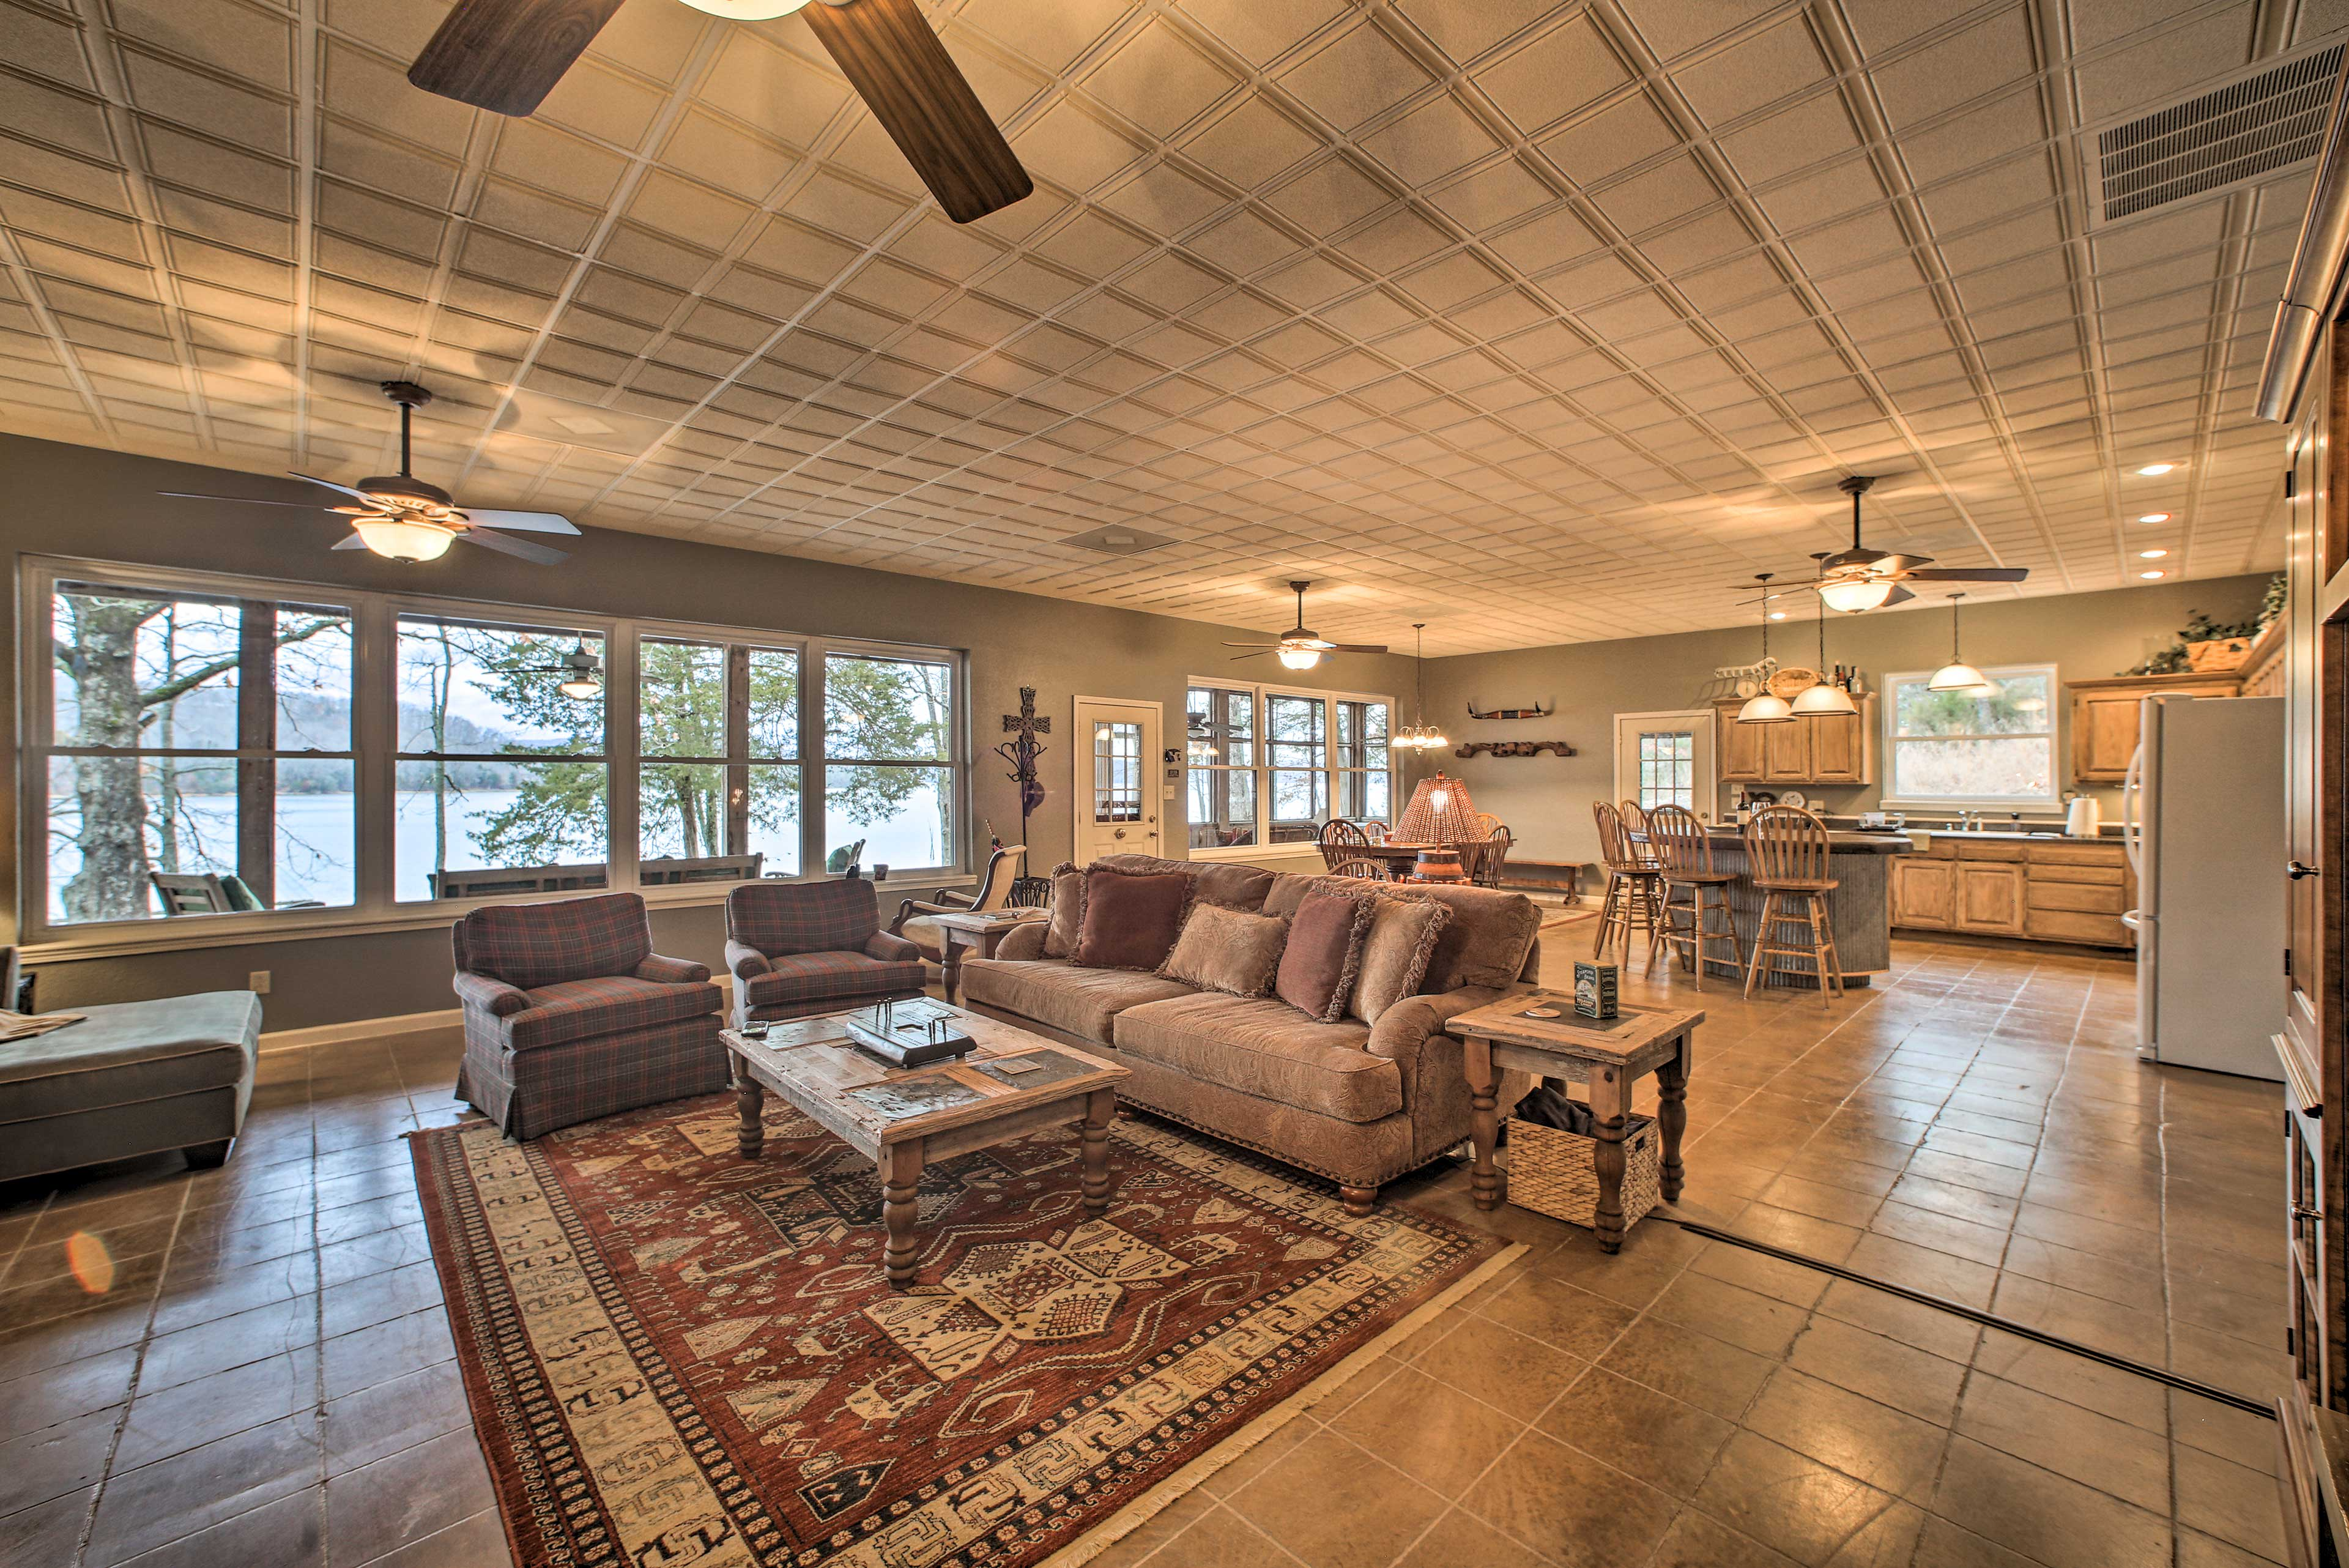 Enjoy the open layout and many windows in this 4-bed, 3-bath Beaver Lake home.